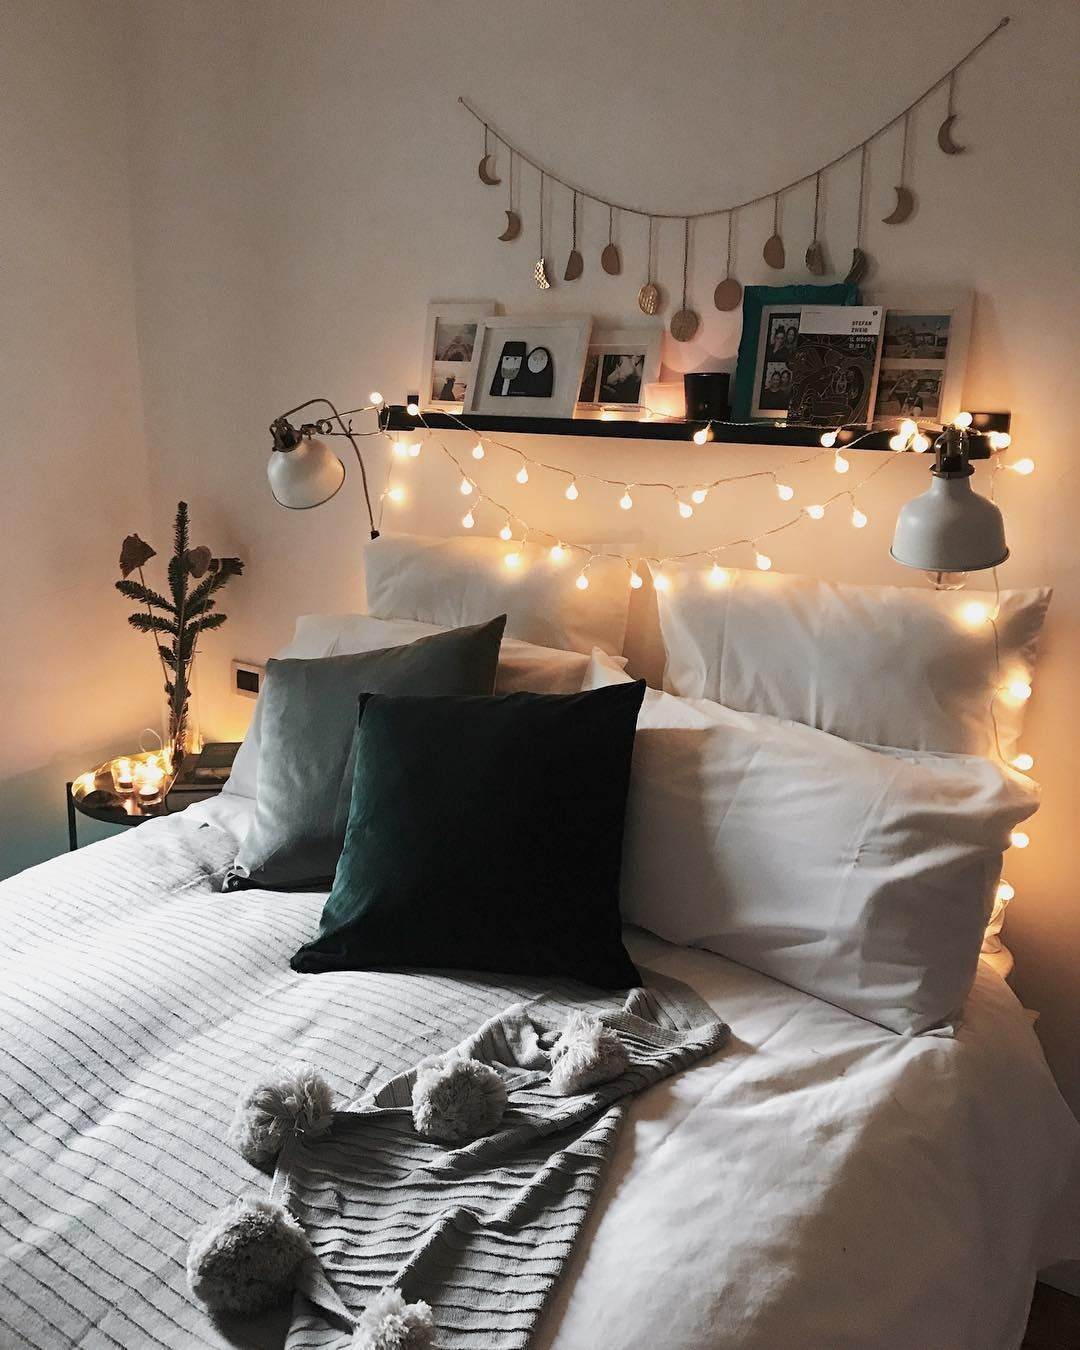 Christmas Bedroom Decorations Tumblr Bedroom Lighting Lamps Bedroom Colors Burgundy Bedroom Outline: Pin By Dede On Dream Bedroom